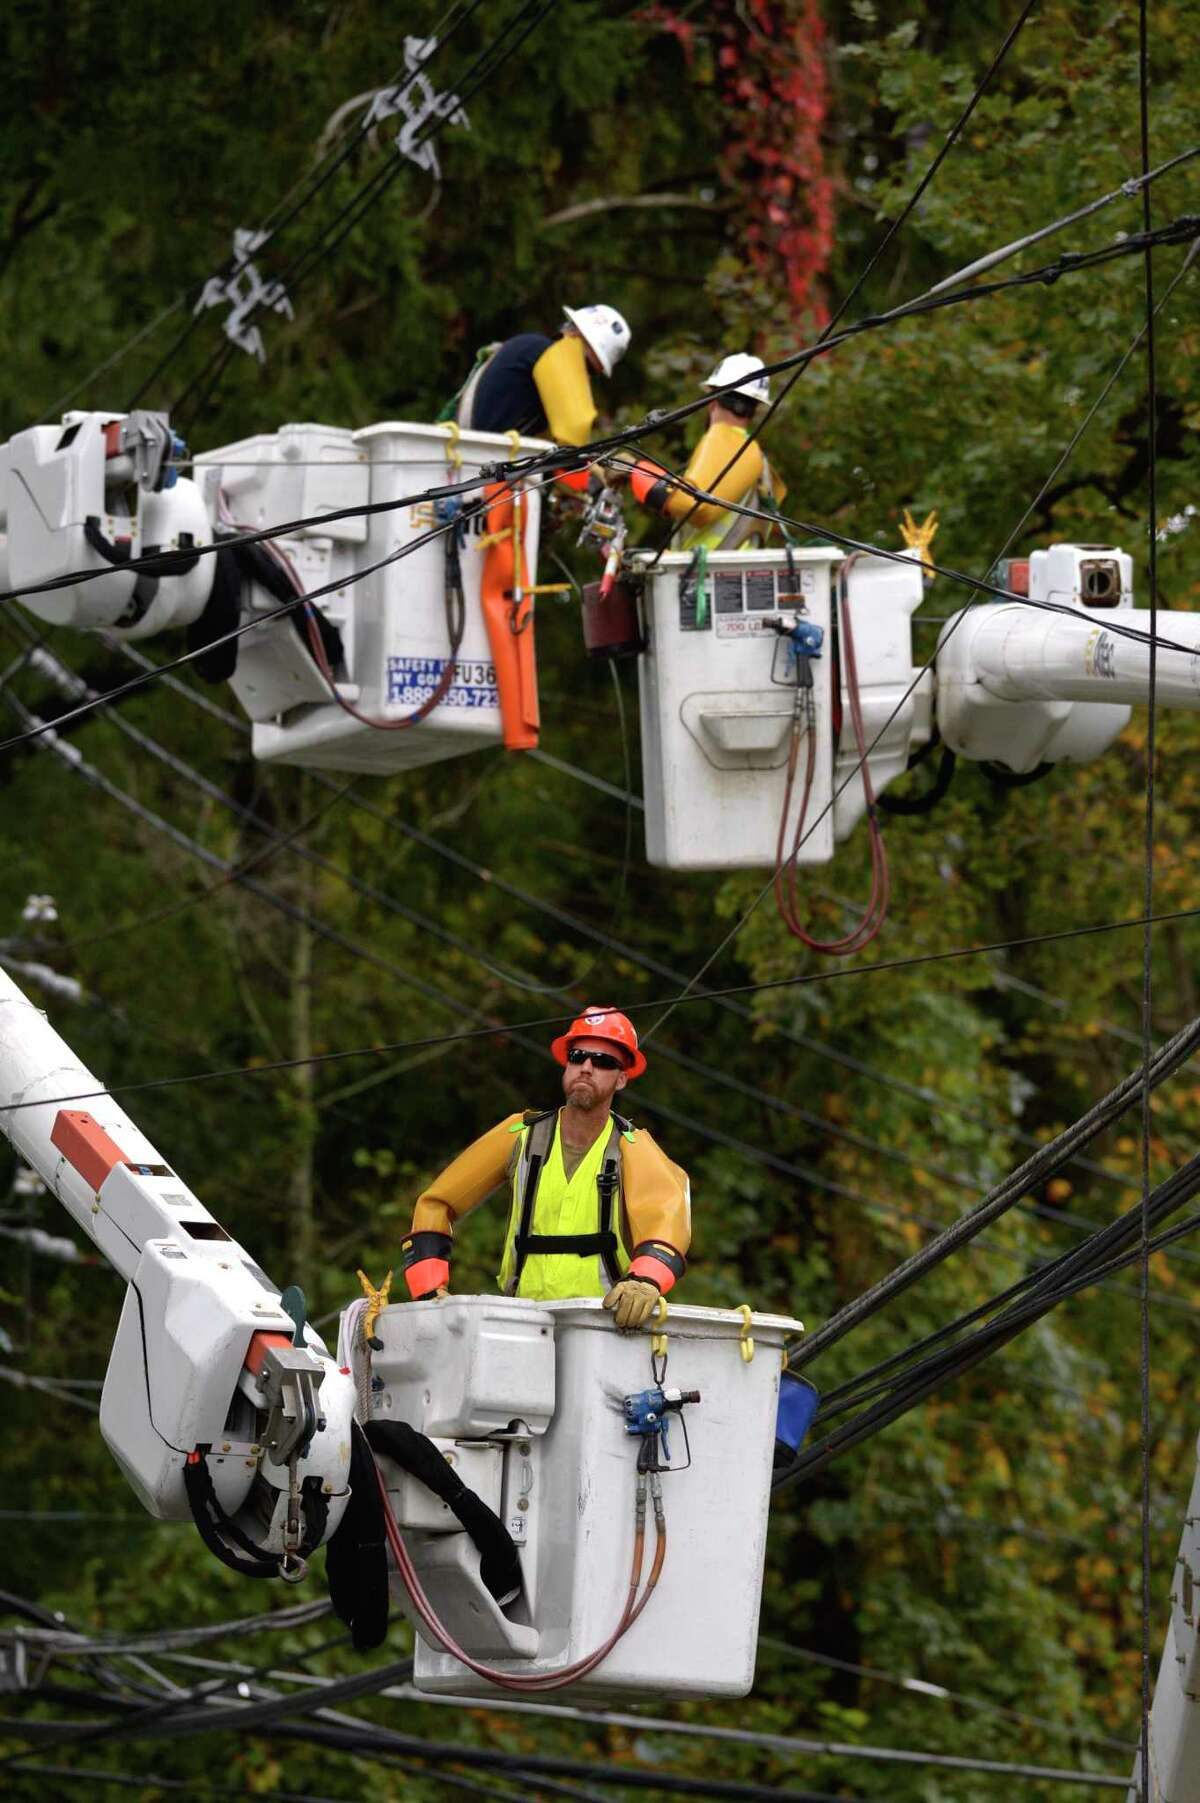 Crews work on downed power lines on South Street, at Oakland Heights, in Bethel, Conn, on Wednesday, September 30, 2020. Power was out in multiple locations due to a storm that moved through the area overnight.